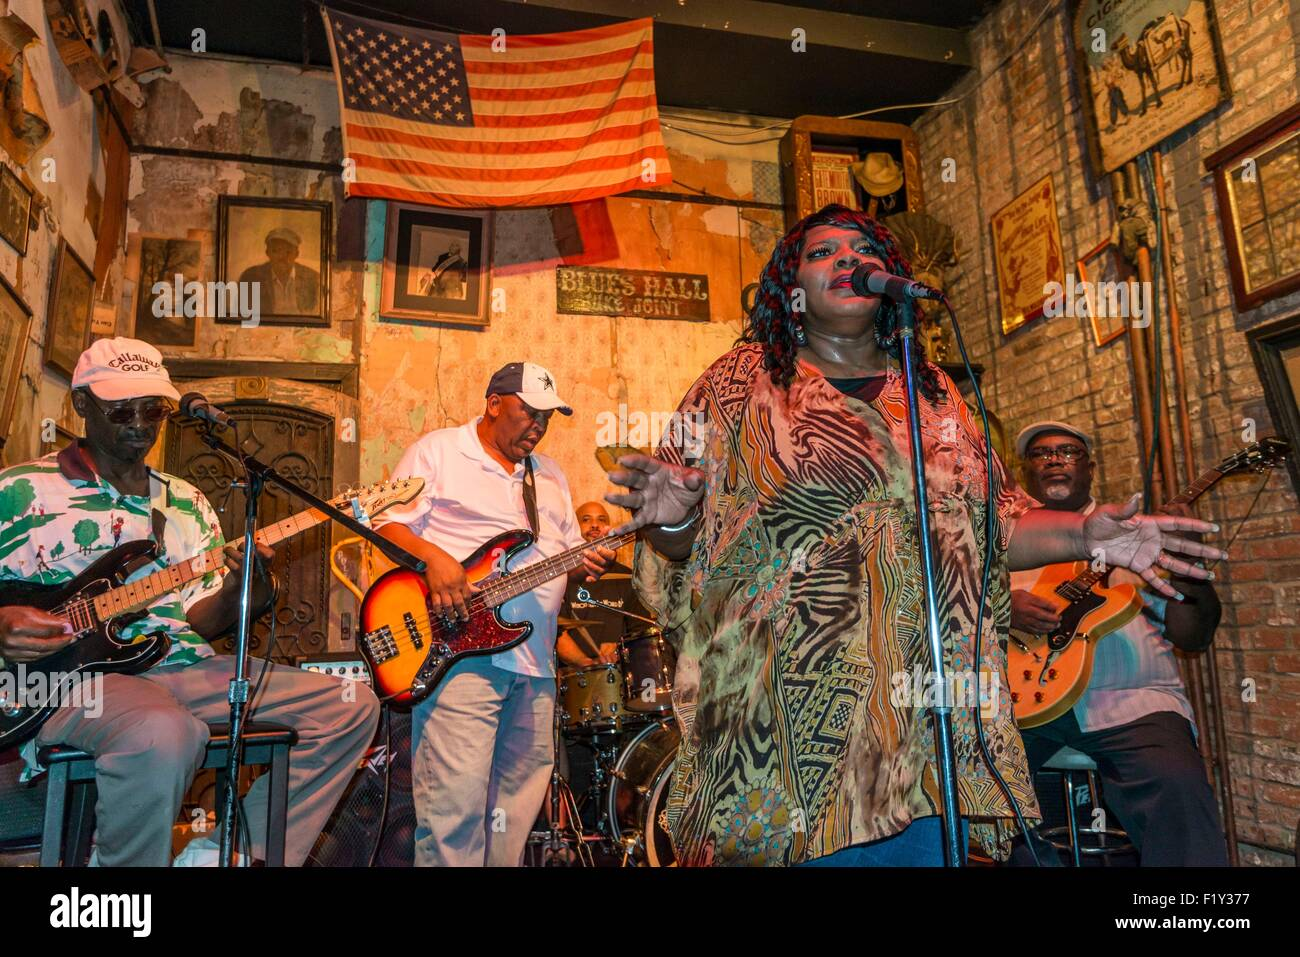 United States, Tennessee, Memphis, Blues singer Queen Ann Hines on stage at Mr Handy's Blues Hall on Beale Street - Stock Image